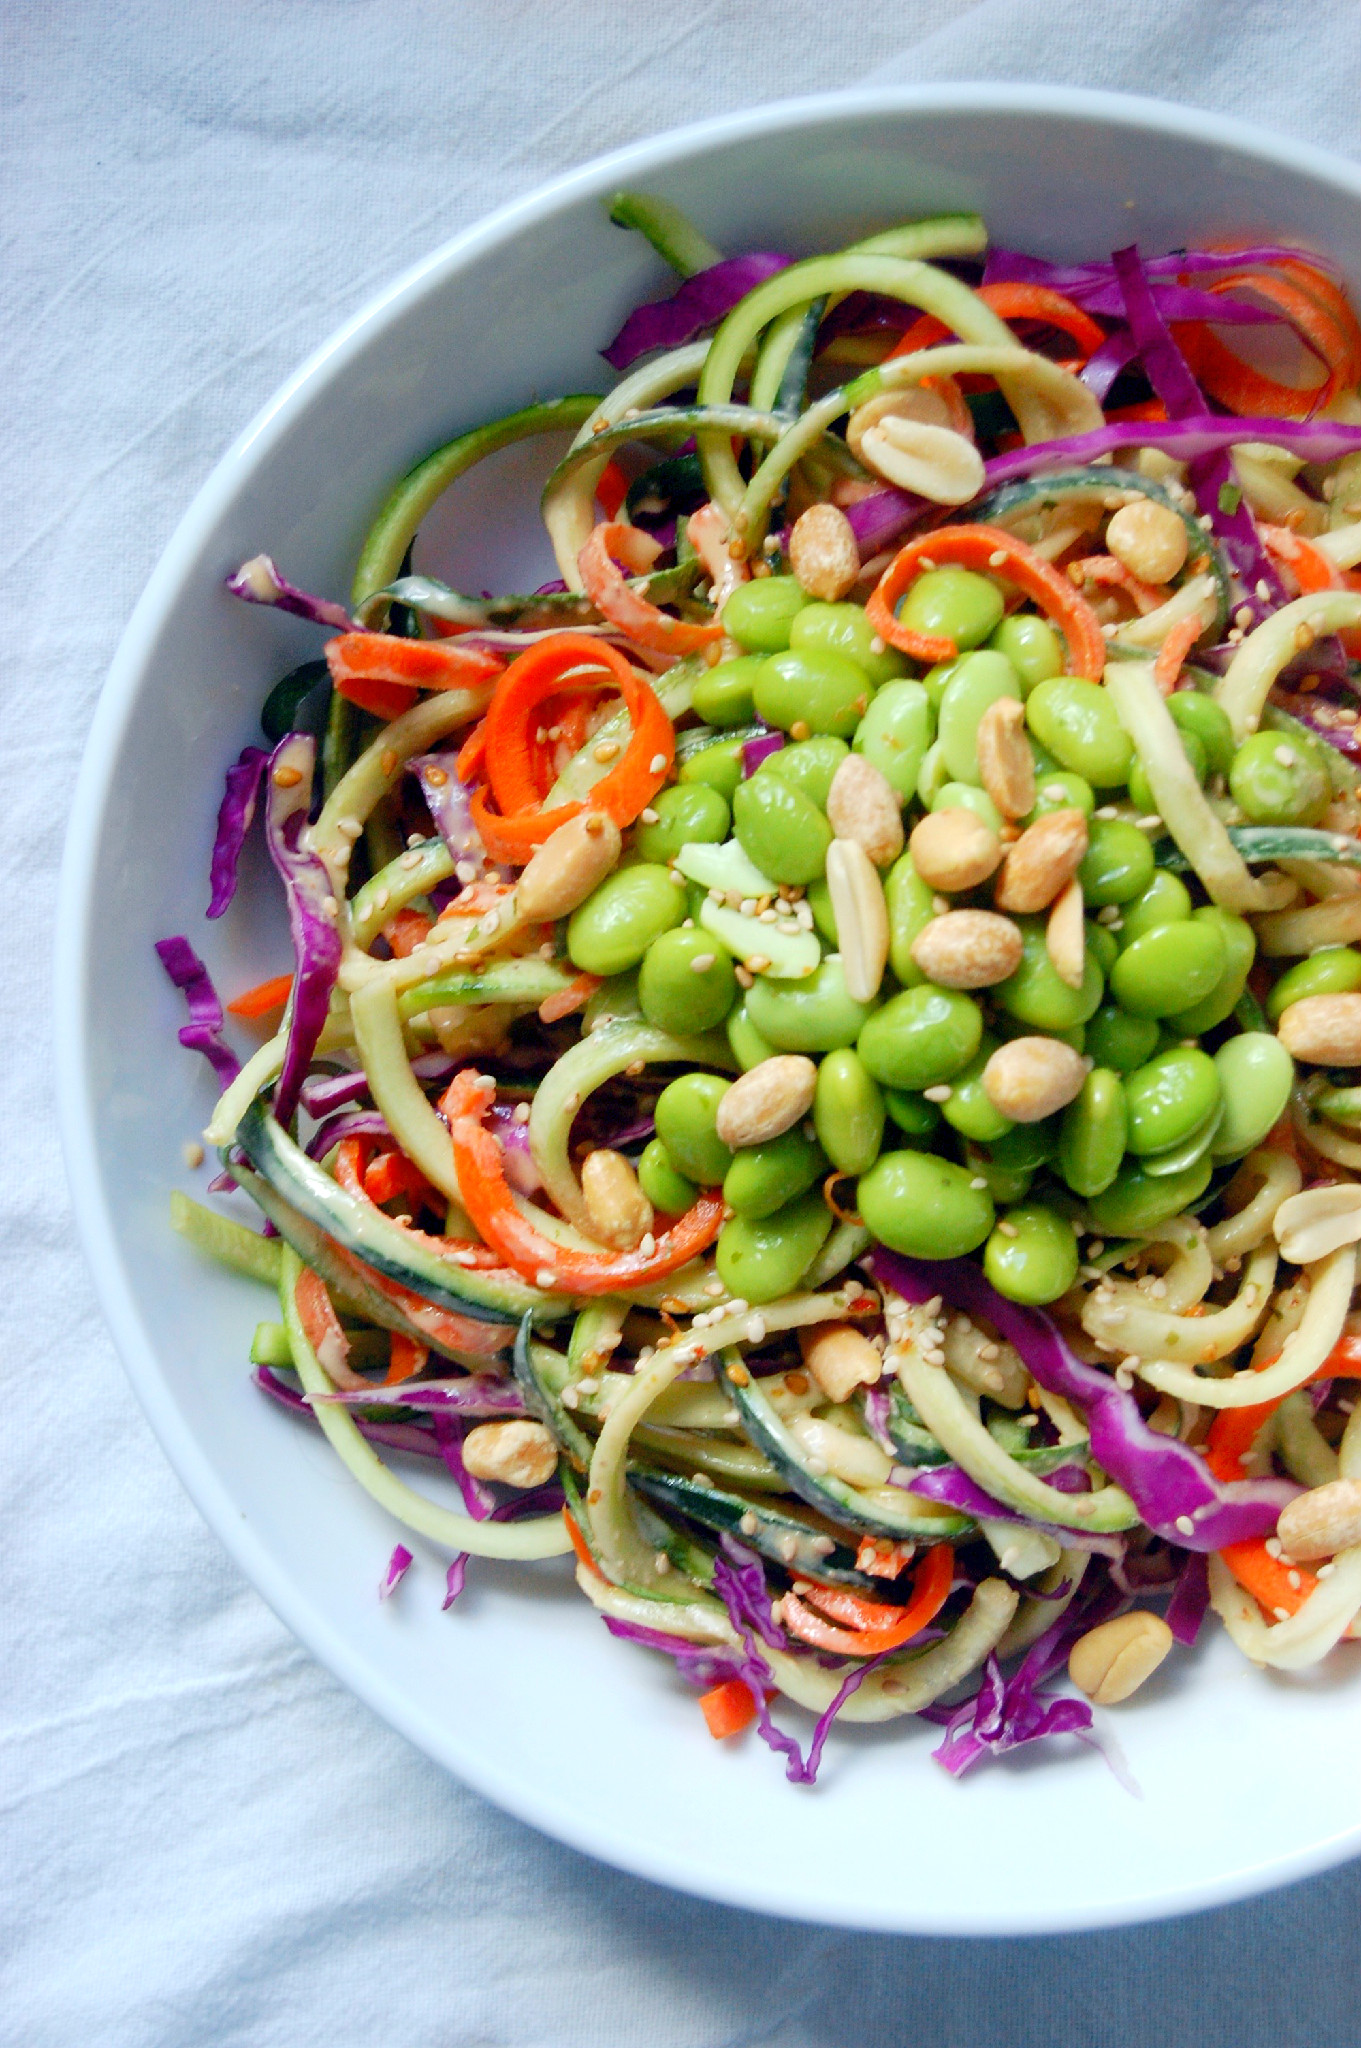 Peanut Zucchini Noodle Salad with Carrots, Cabbage, and Edamame | uprootfromoregon.com